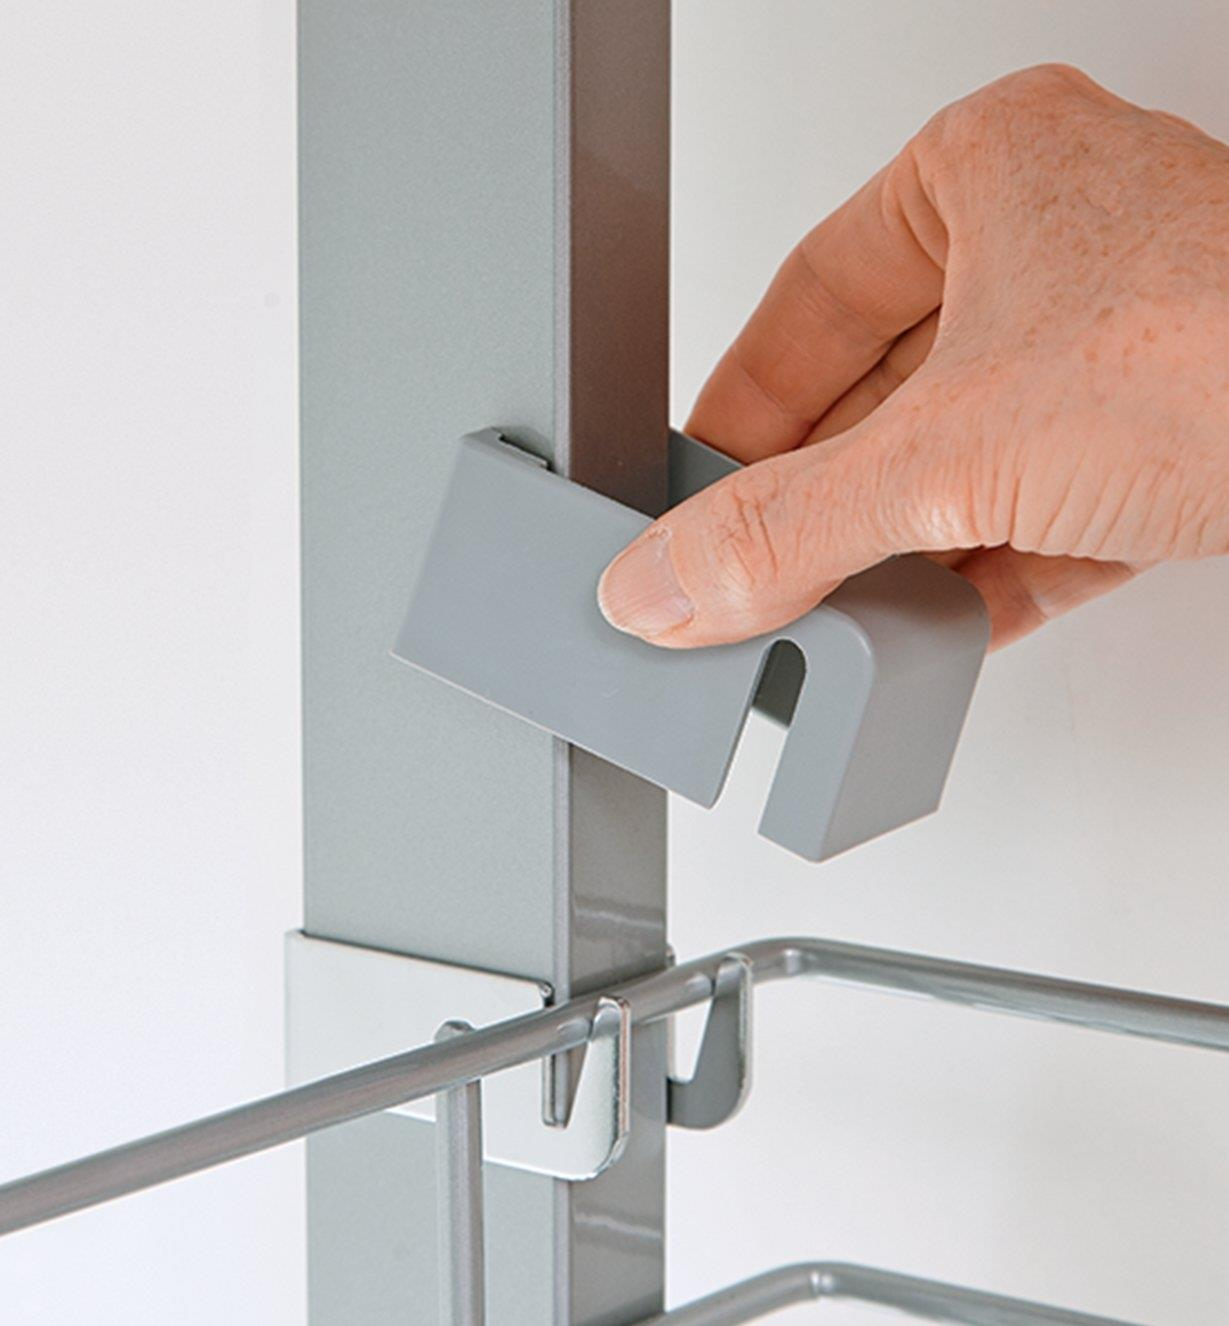 Sliding on a clip to hold a shelf in place on the pantry unit